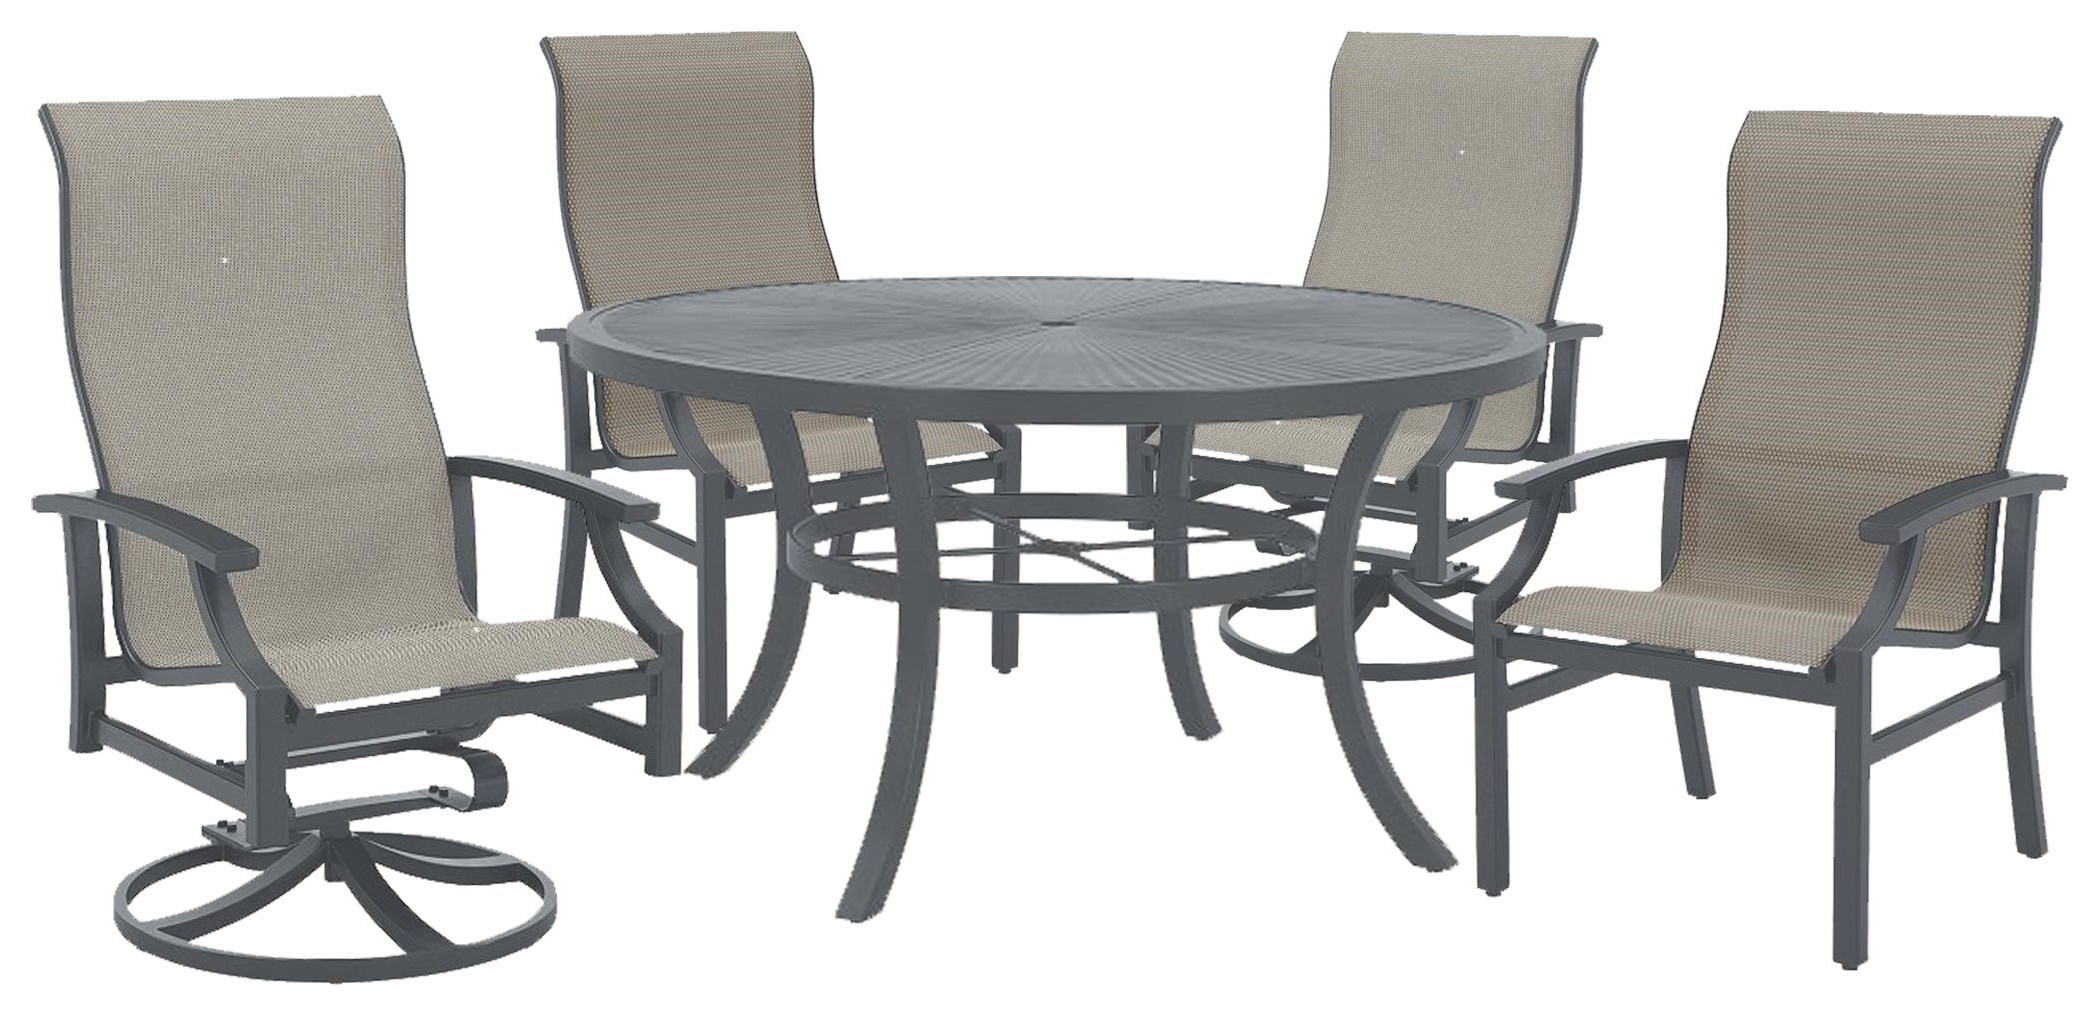 Marconi Outdoor Table, Swivel Chair, Dining Chair by Tropitone at Johnny Janosik